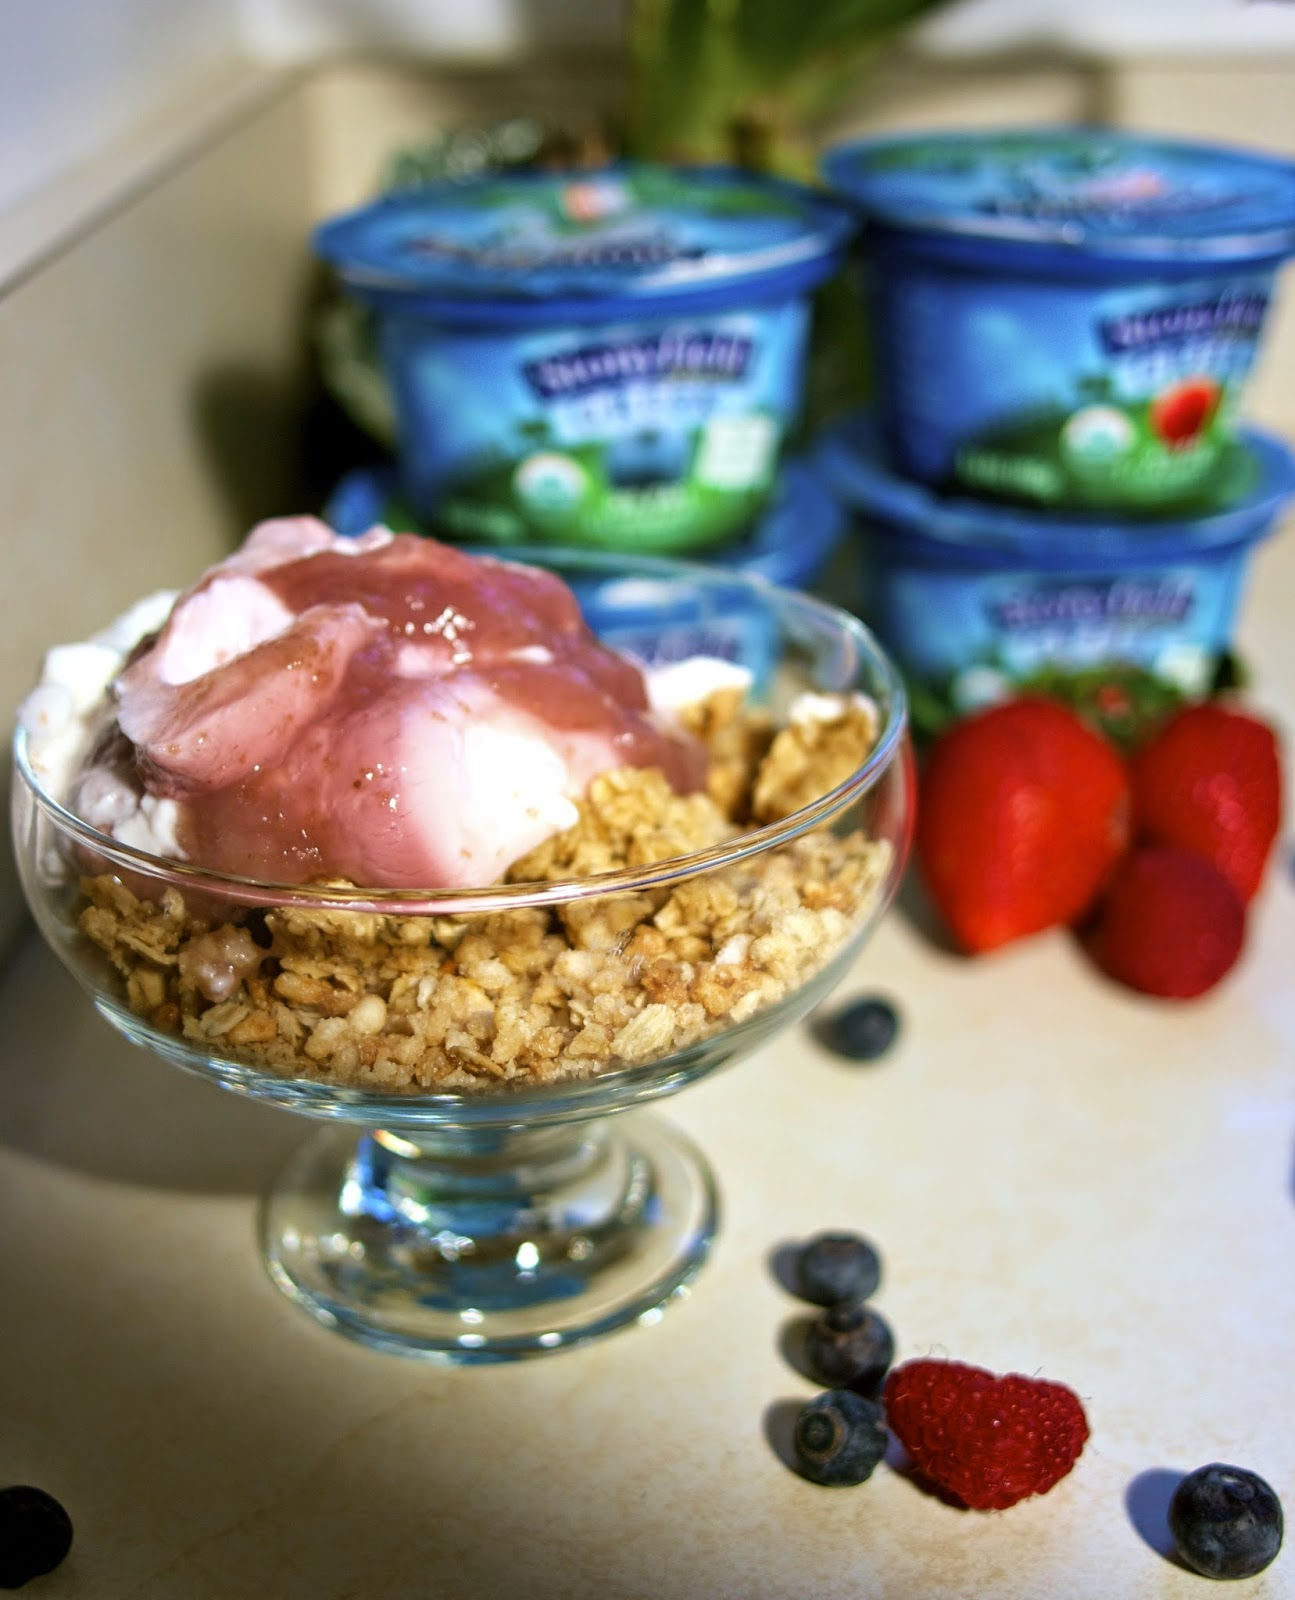 Stonyfield Greek Yogurt: Breakfast: simplelivingeating.com